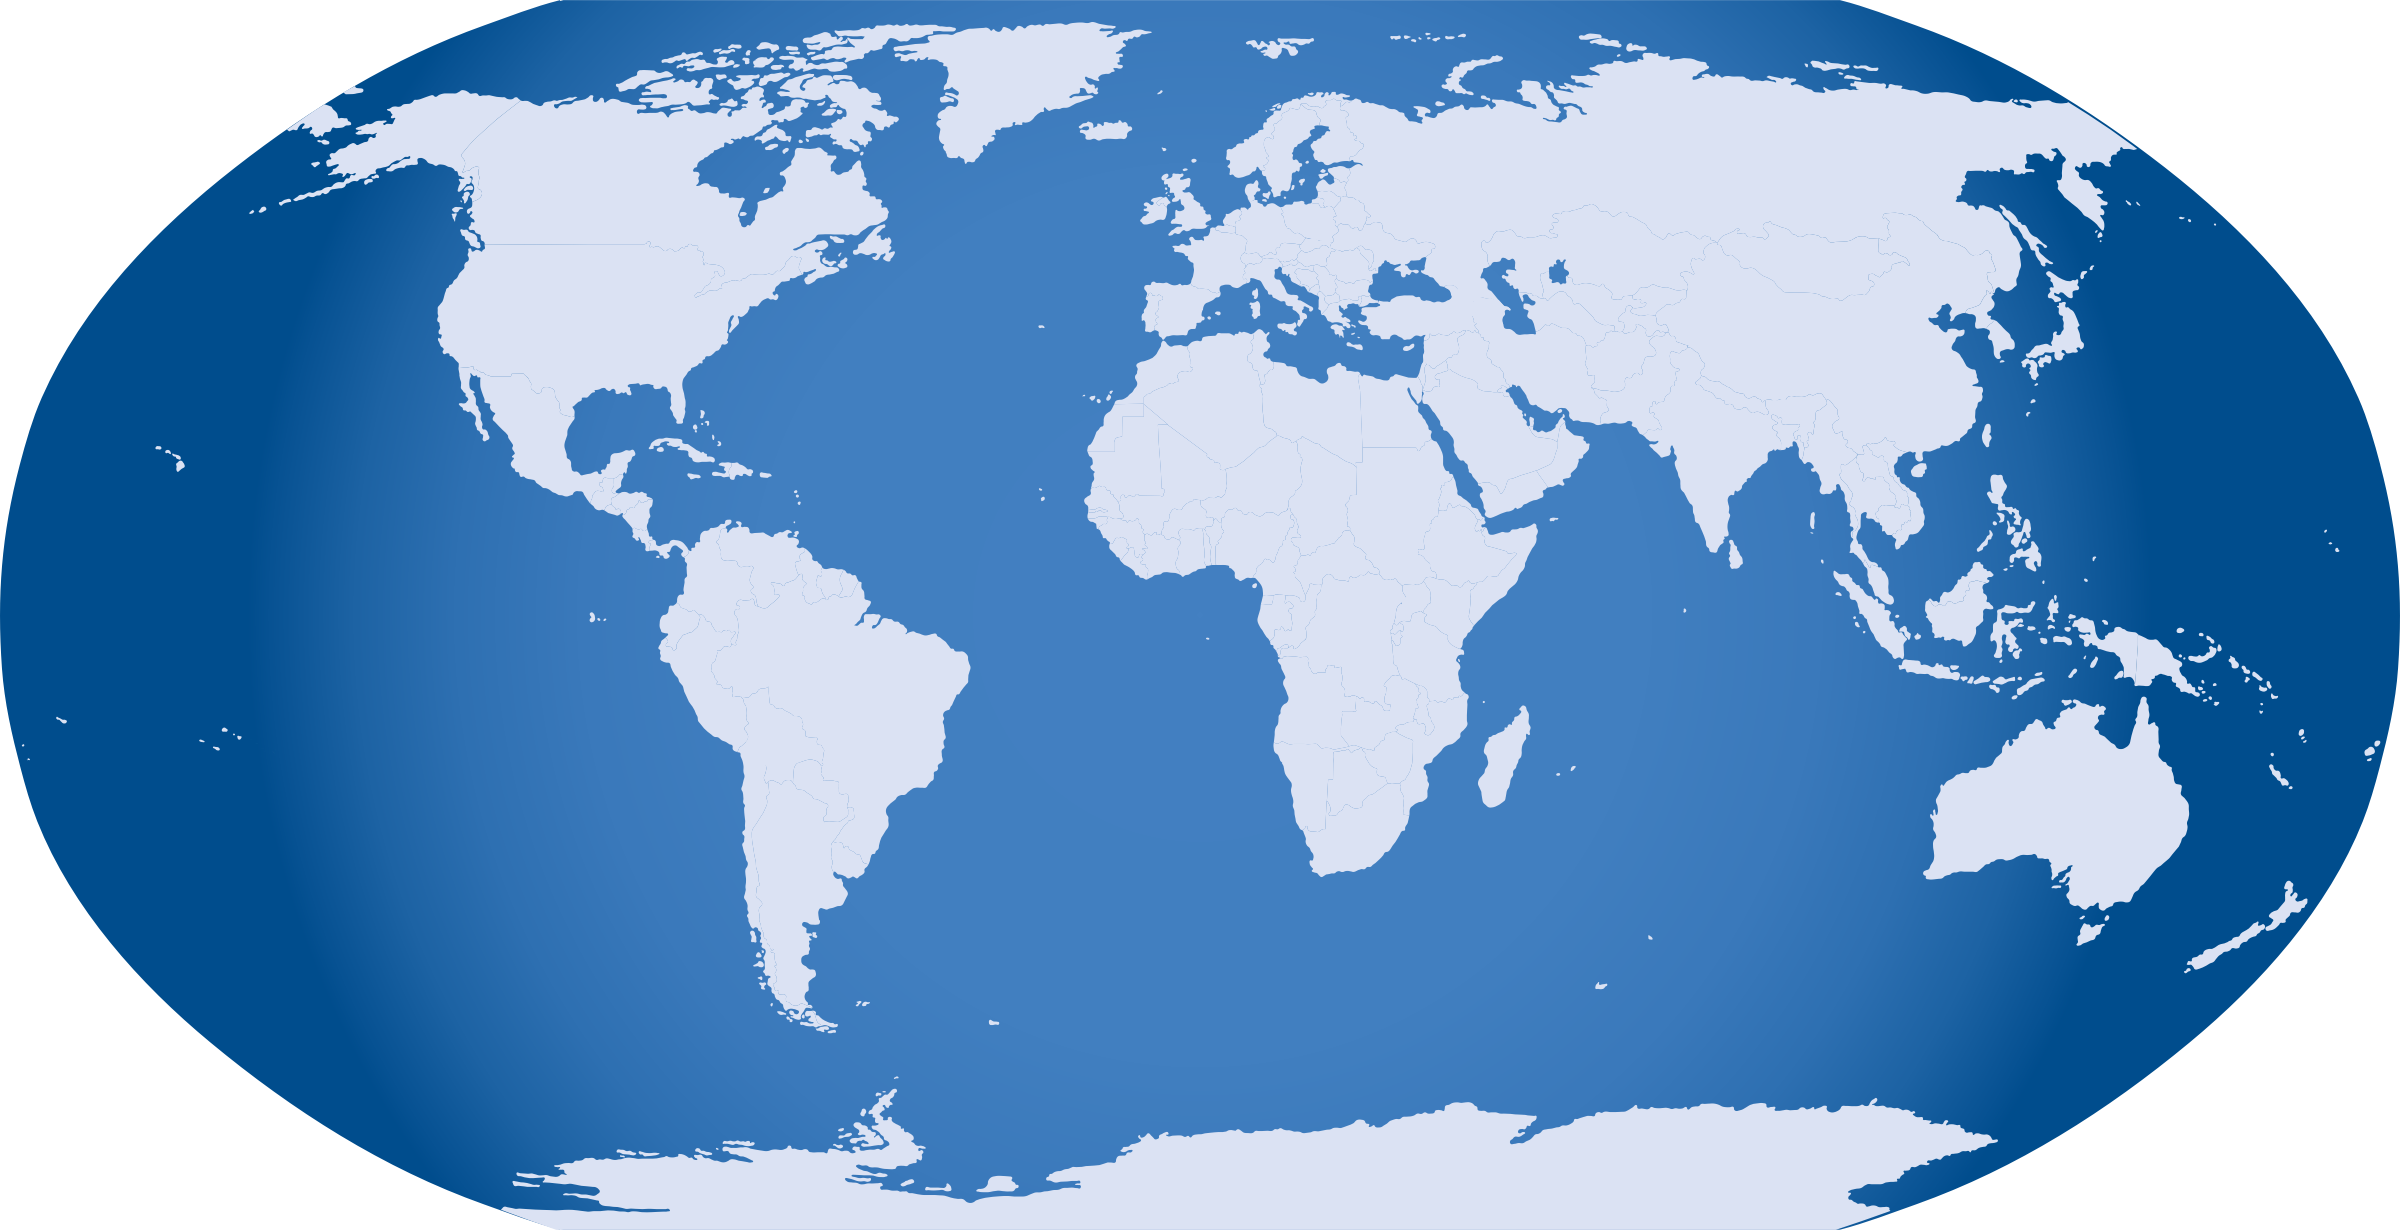 Png on world map. Blue icons free and